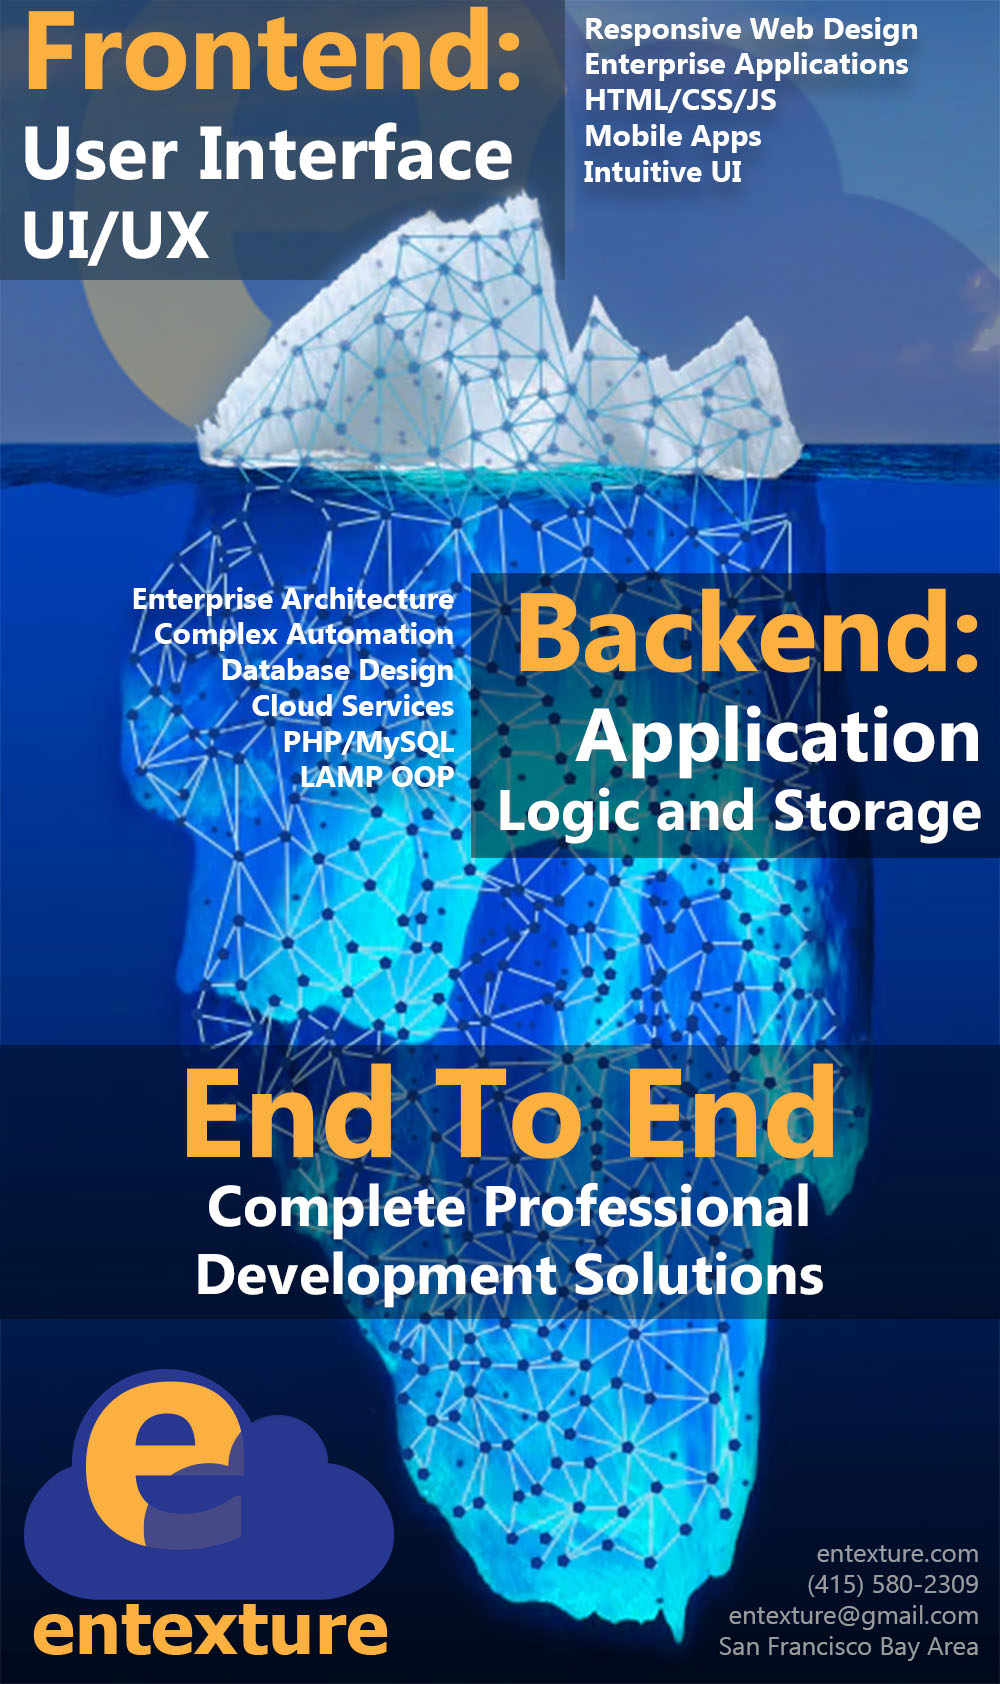 End to End Enterprise Application Development